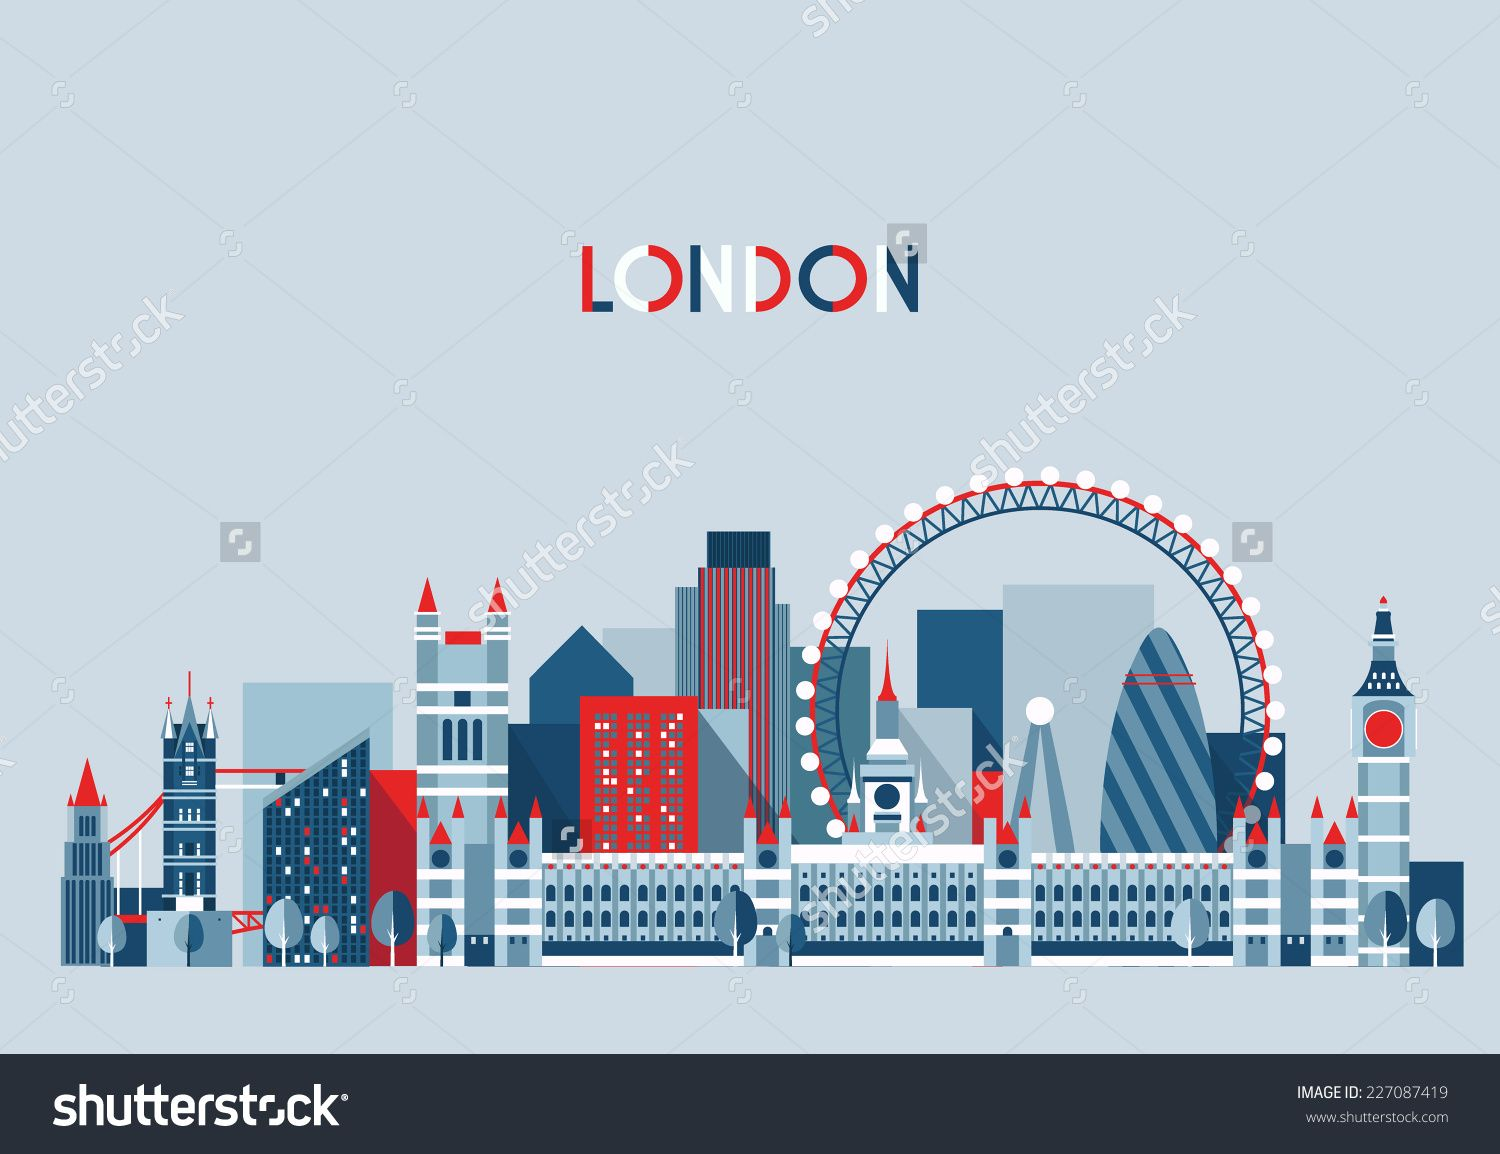 London england city skyline vector background flat trendy london england city skyline vector background flat trendy illustration altavistaventures Image collections